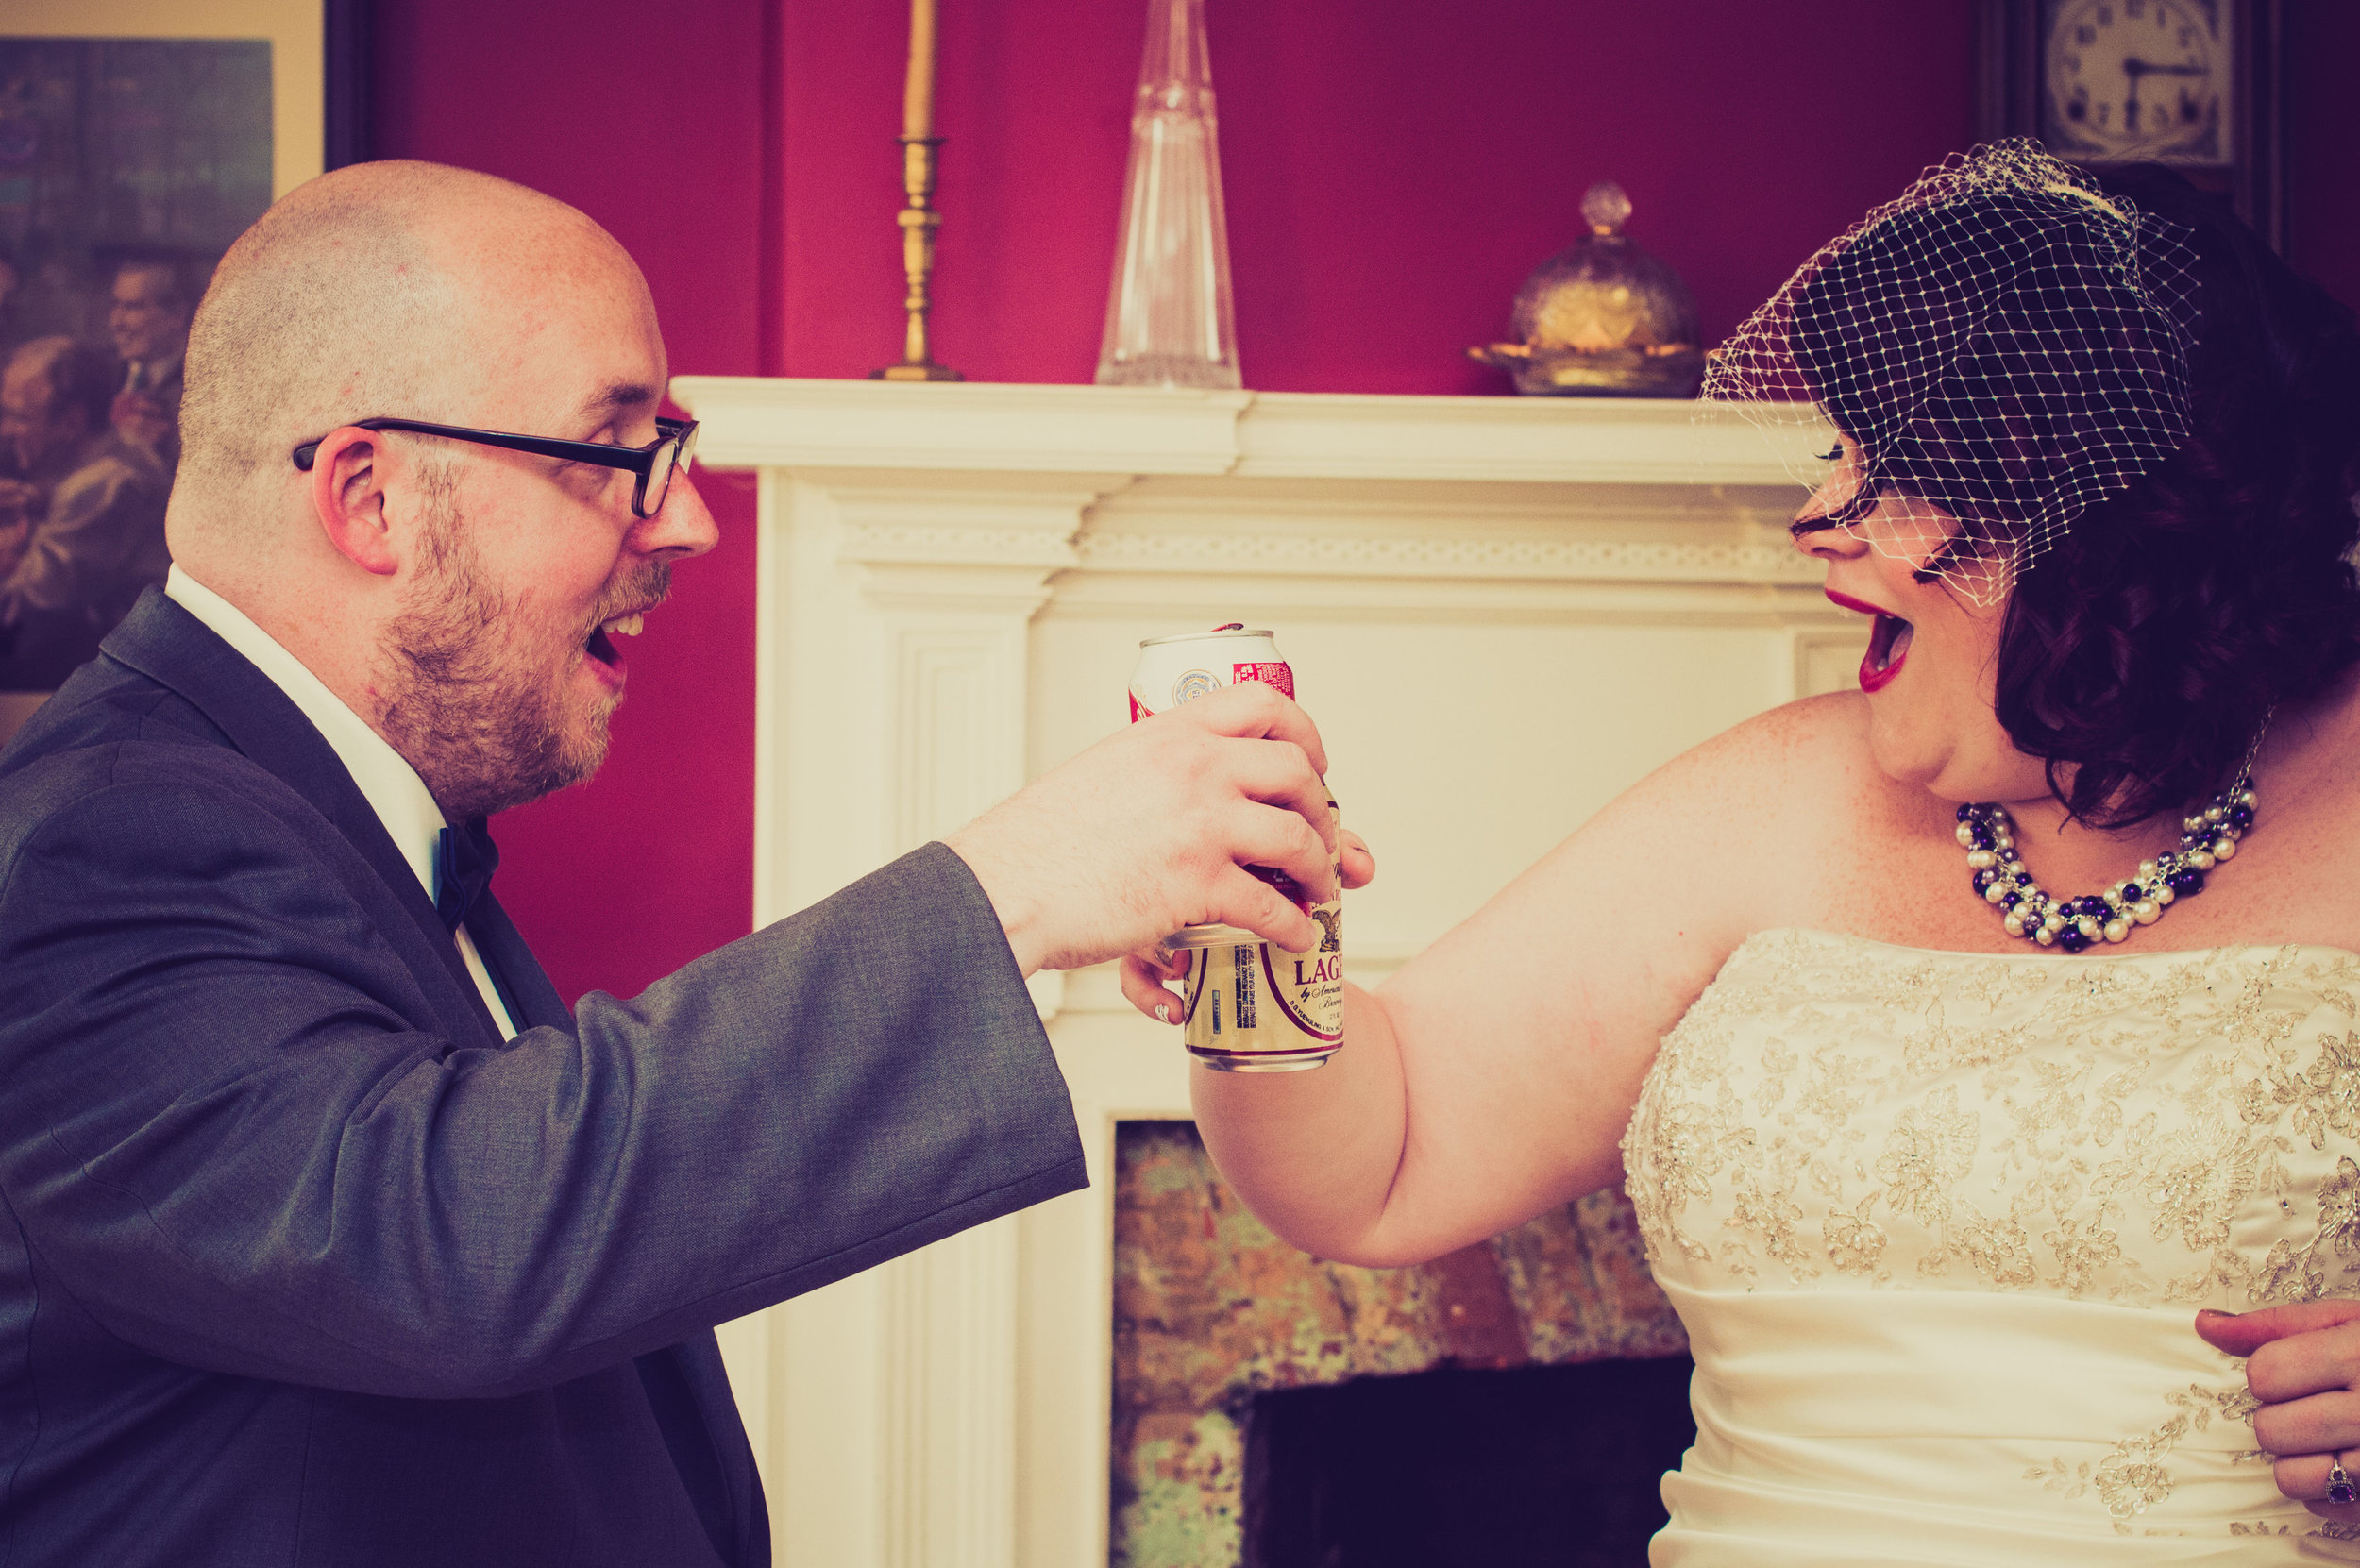 This is my most favorite picture ever from our wedding day.